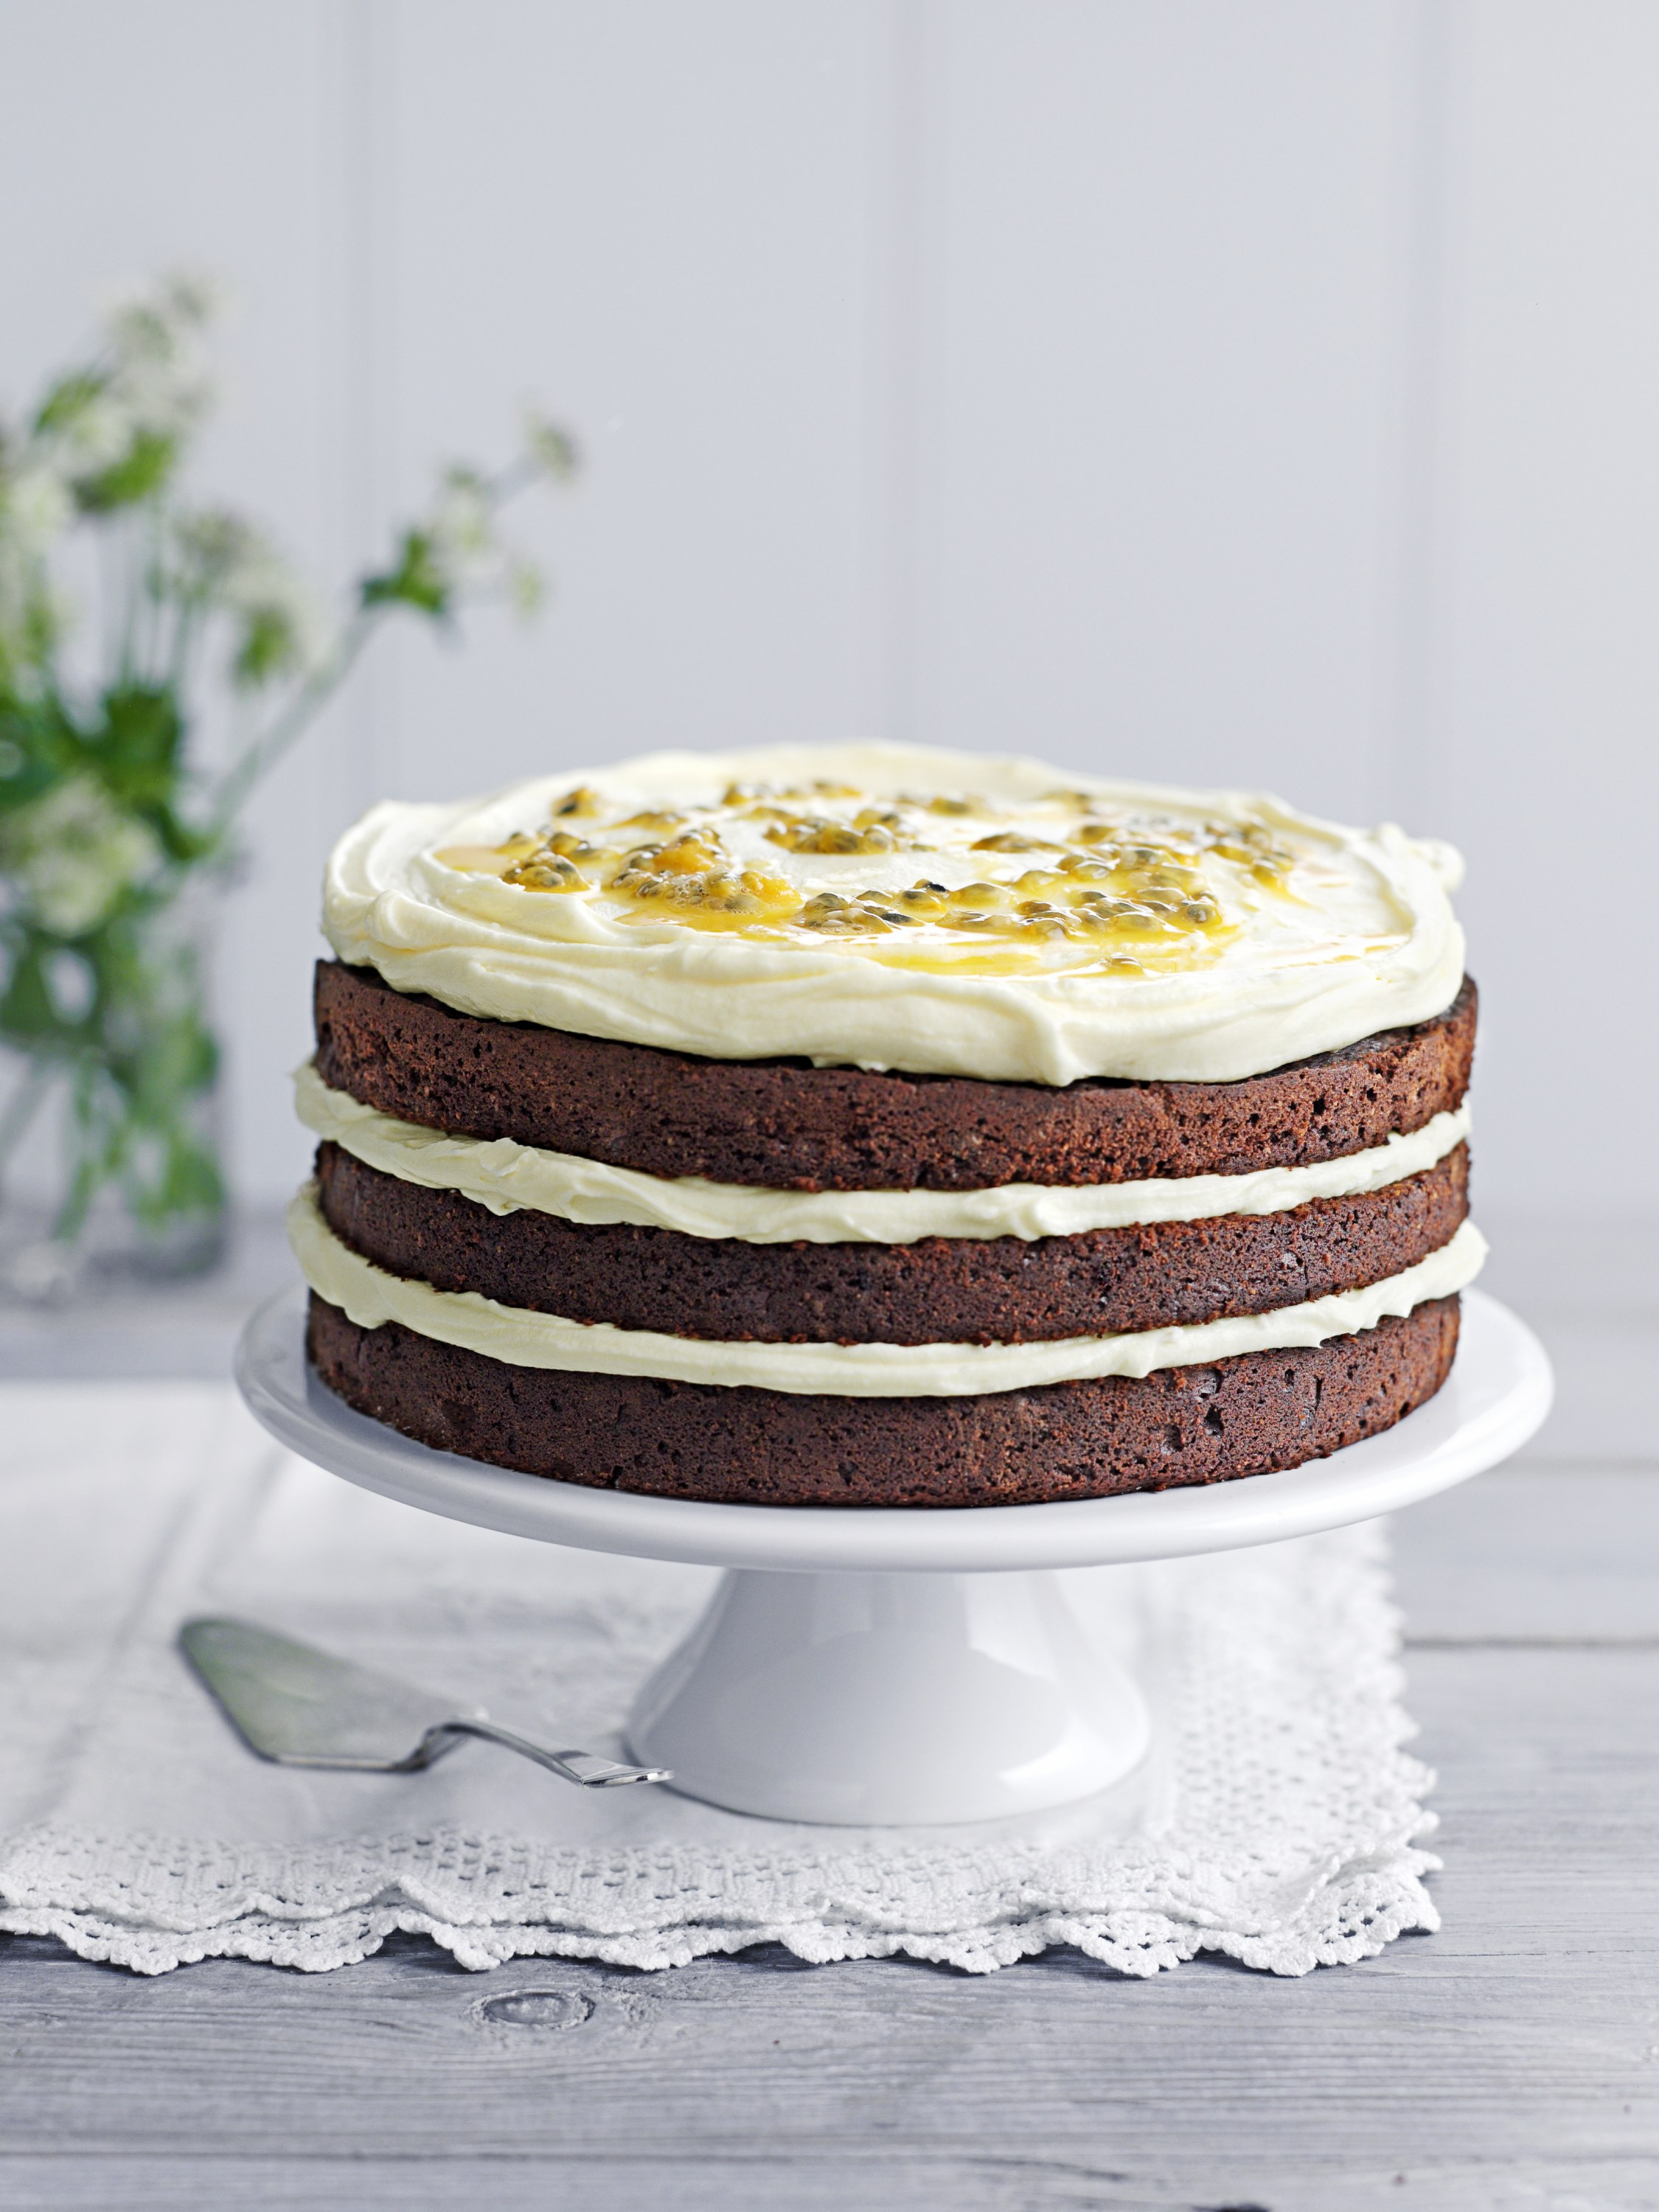 Jo Wheatley's chocolate layer cake with passionfruit icing